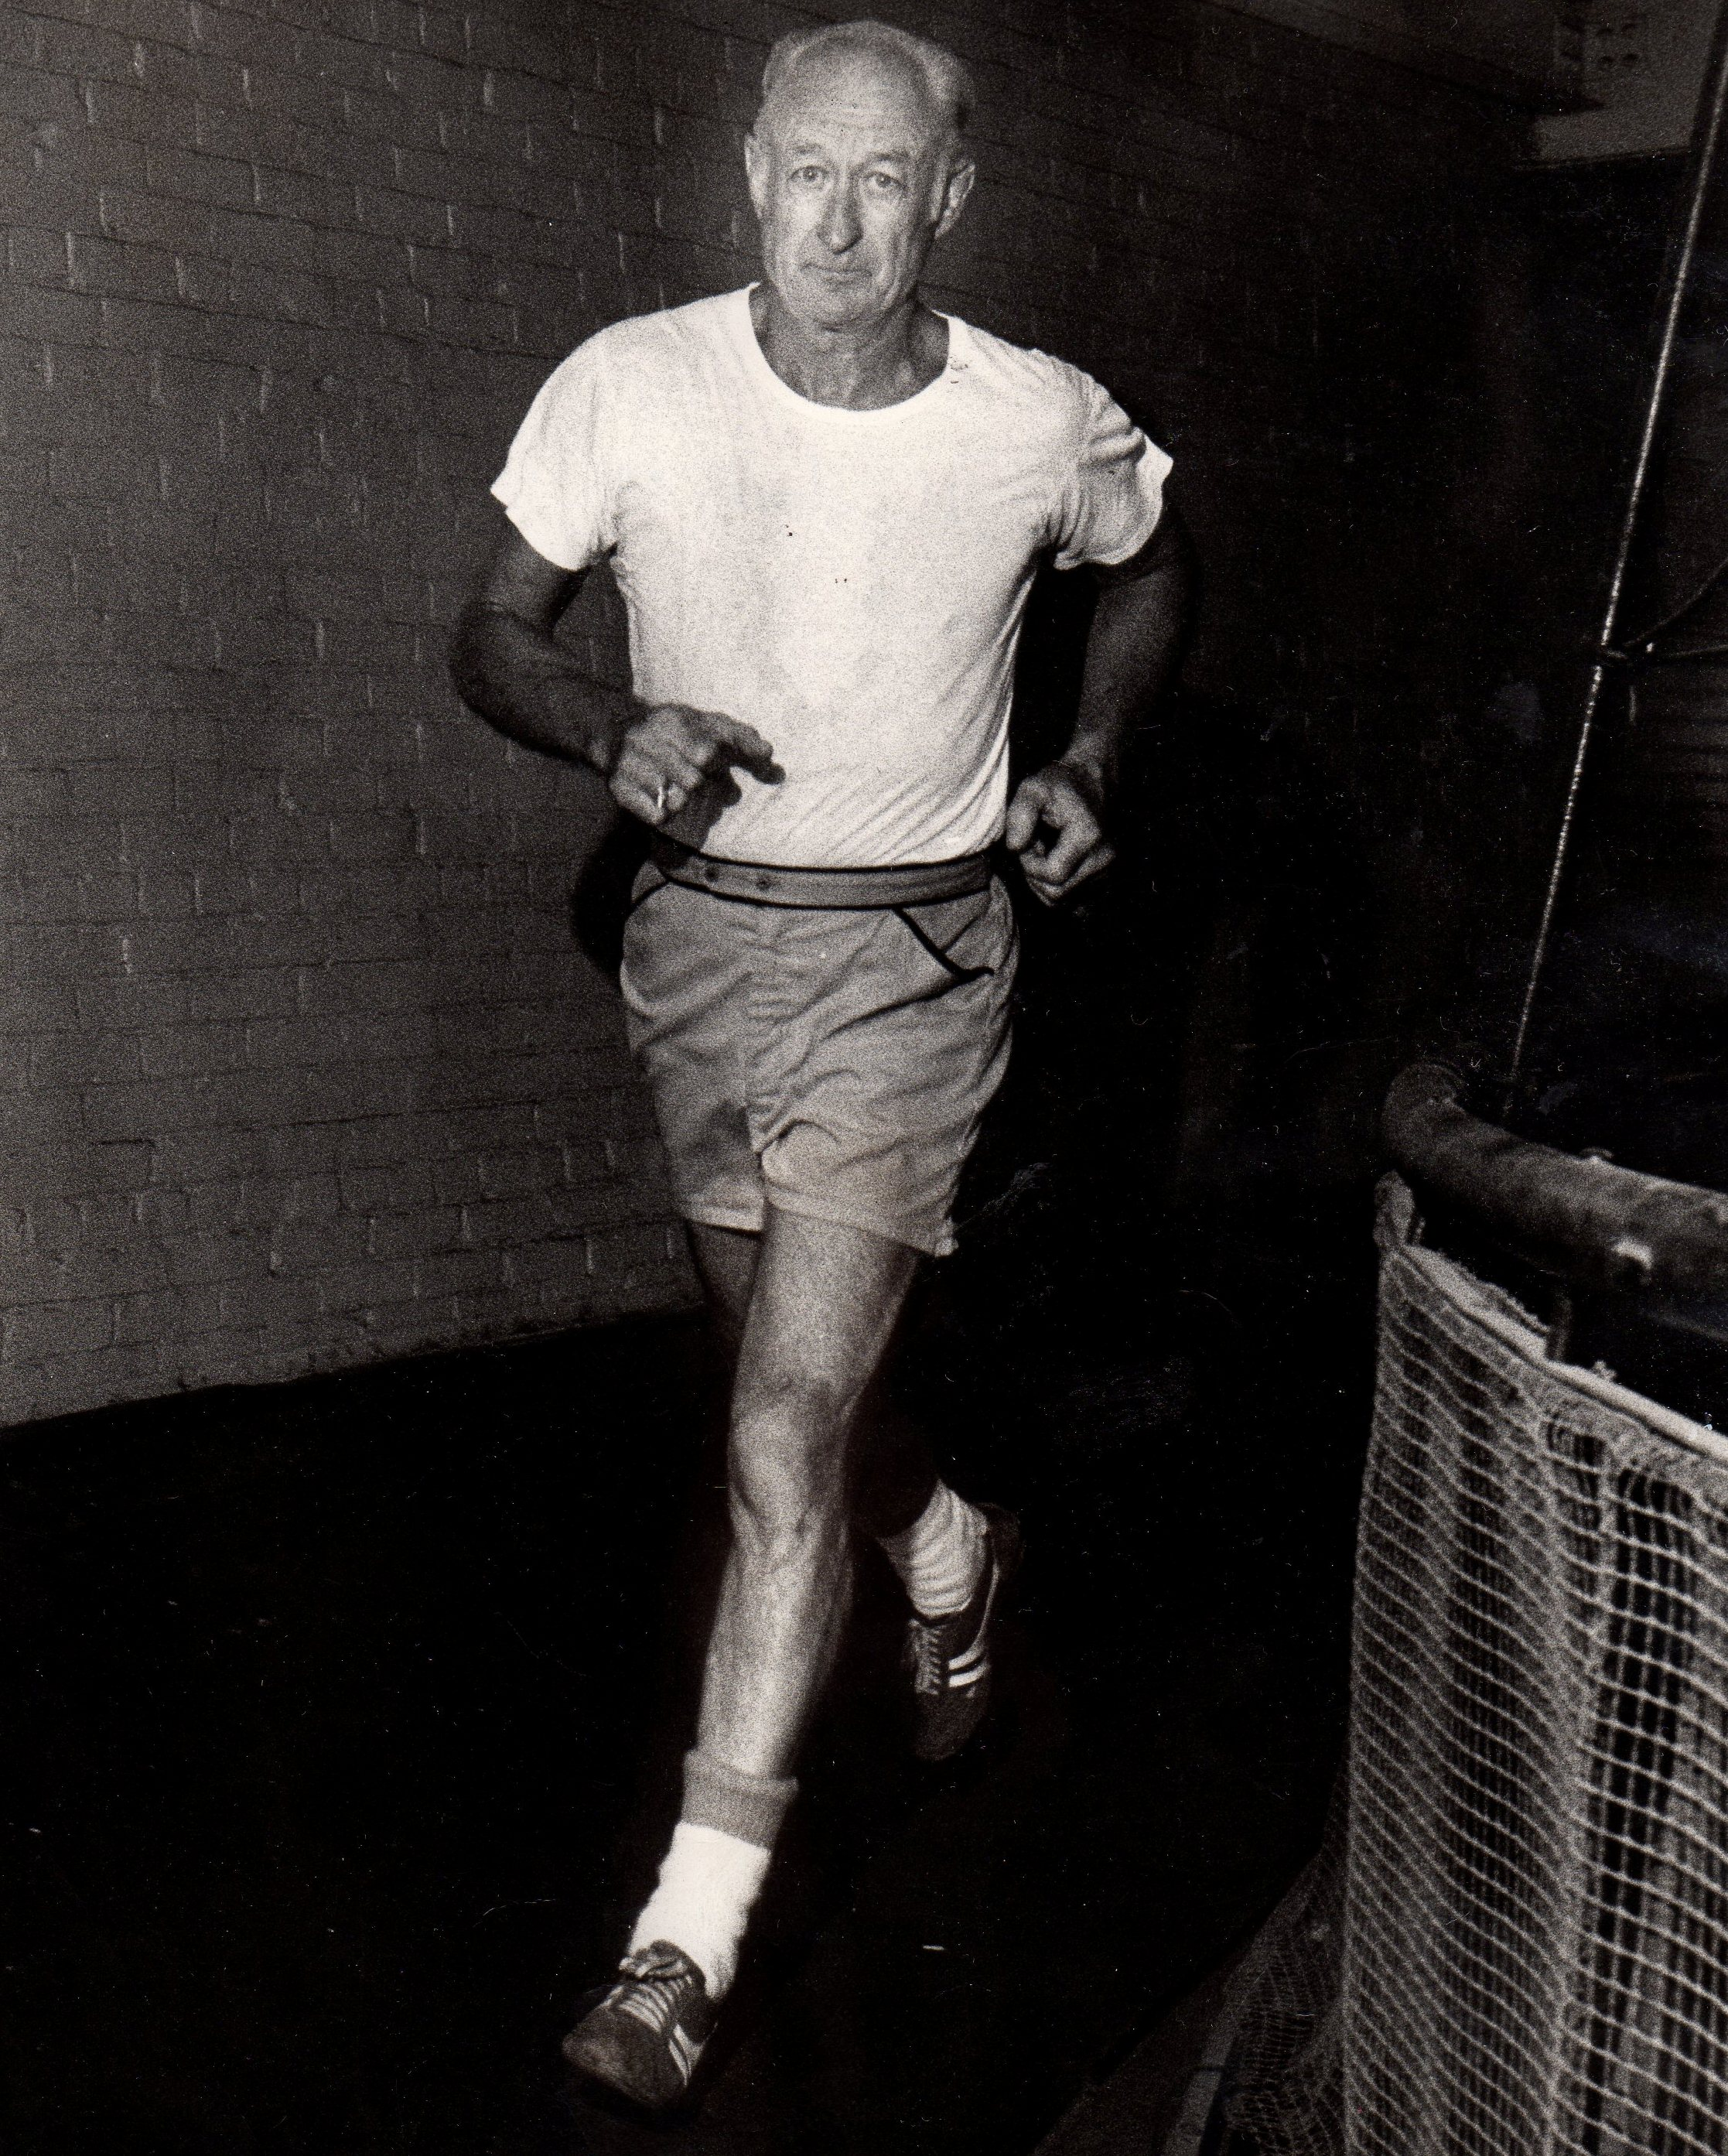 Paul Walsh at Evansville YMCA in 1978.